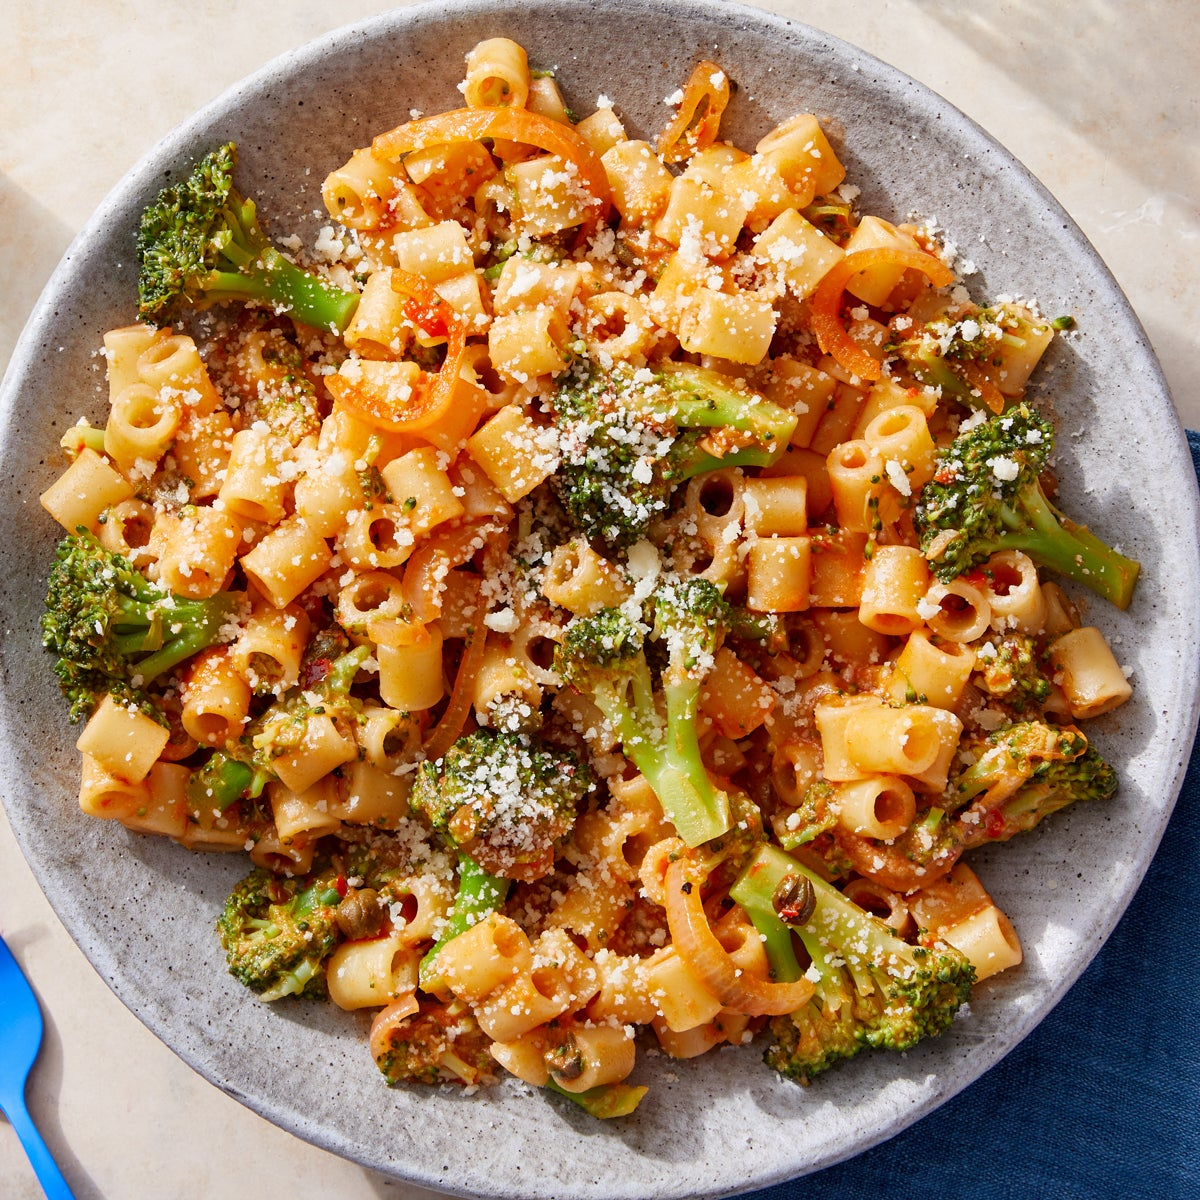 Ditali Pasta & Broccoli with Calabrian Chile-Tomato Sauce